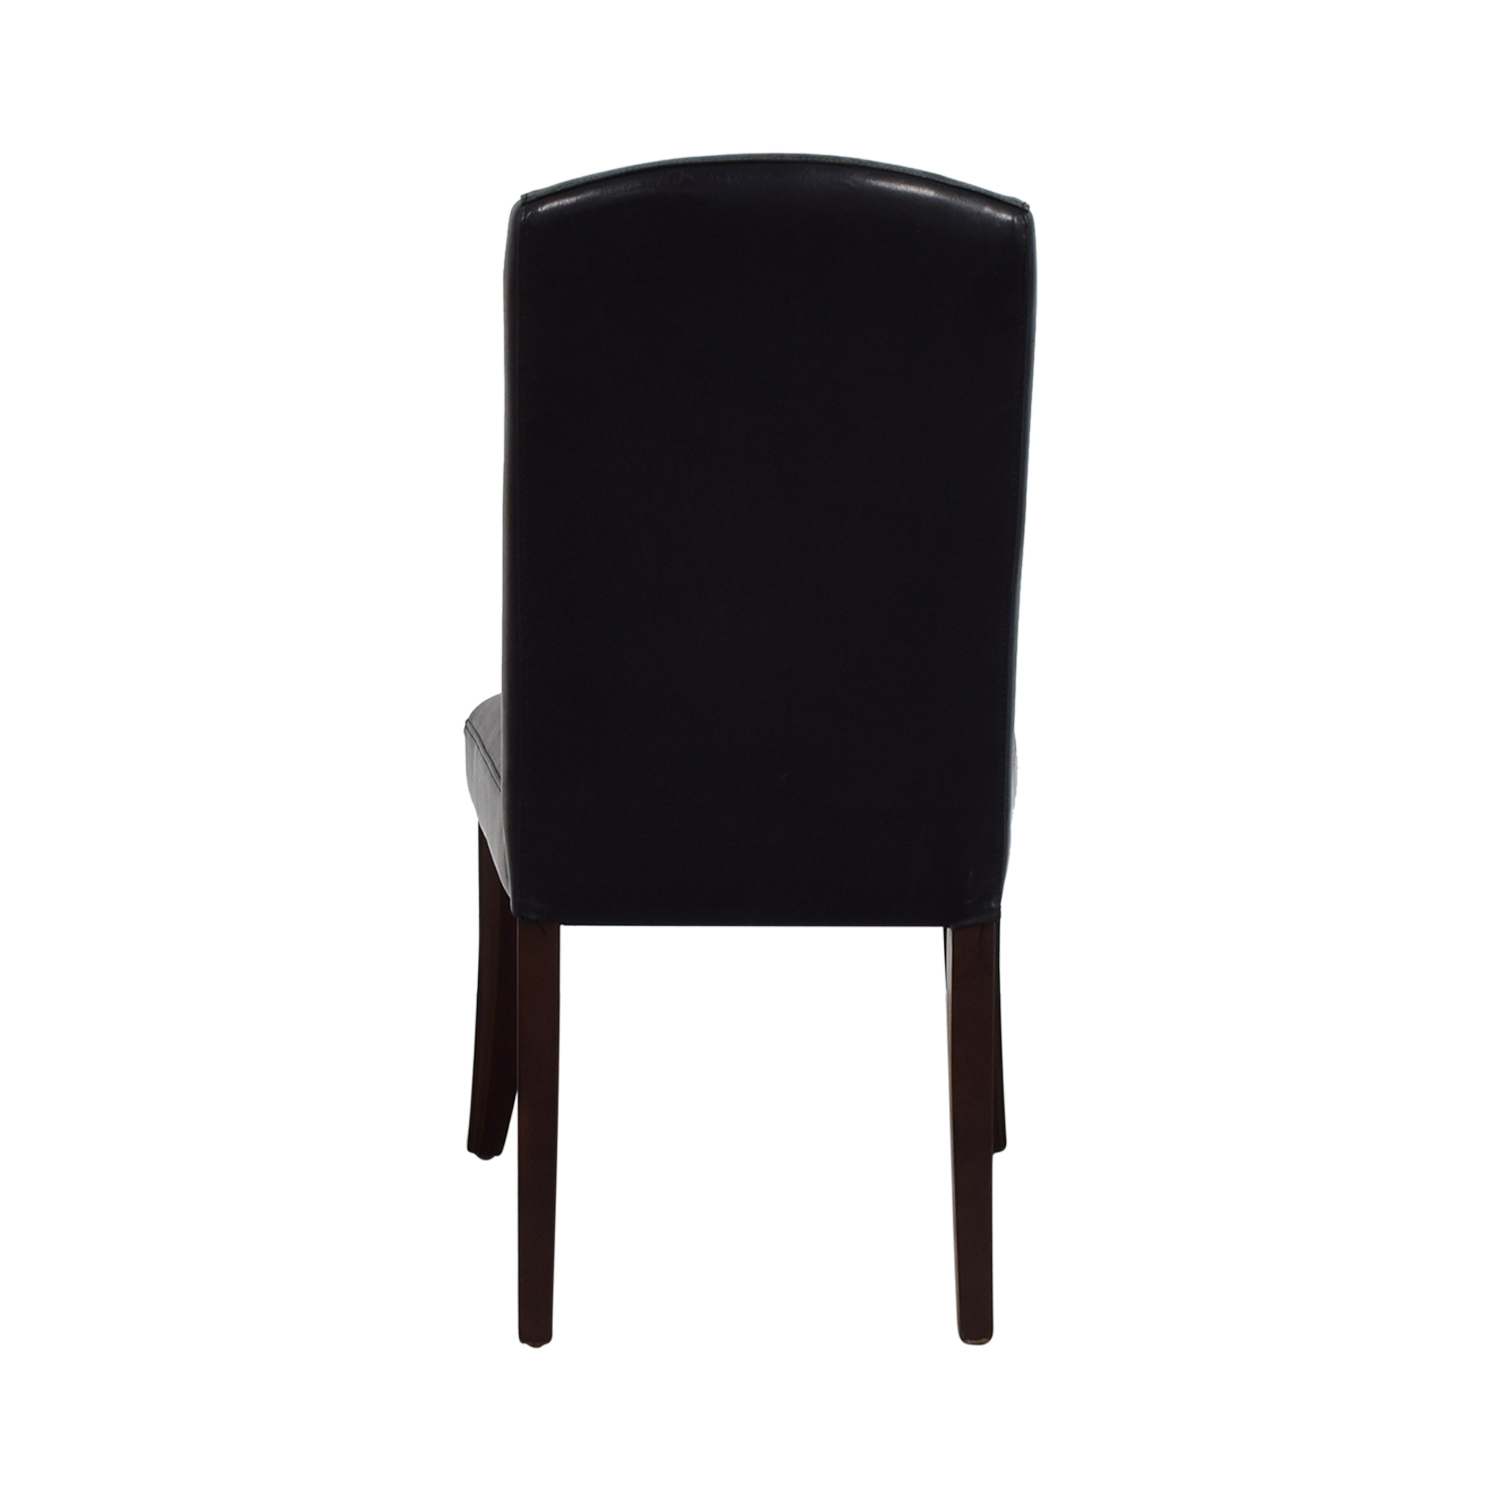 buy Black Leatherette Chair with Padded Seat online